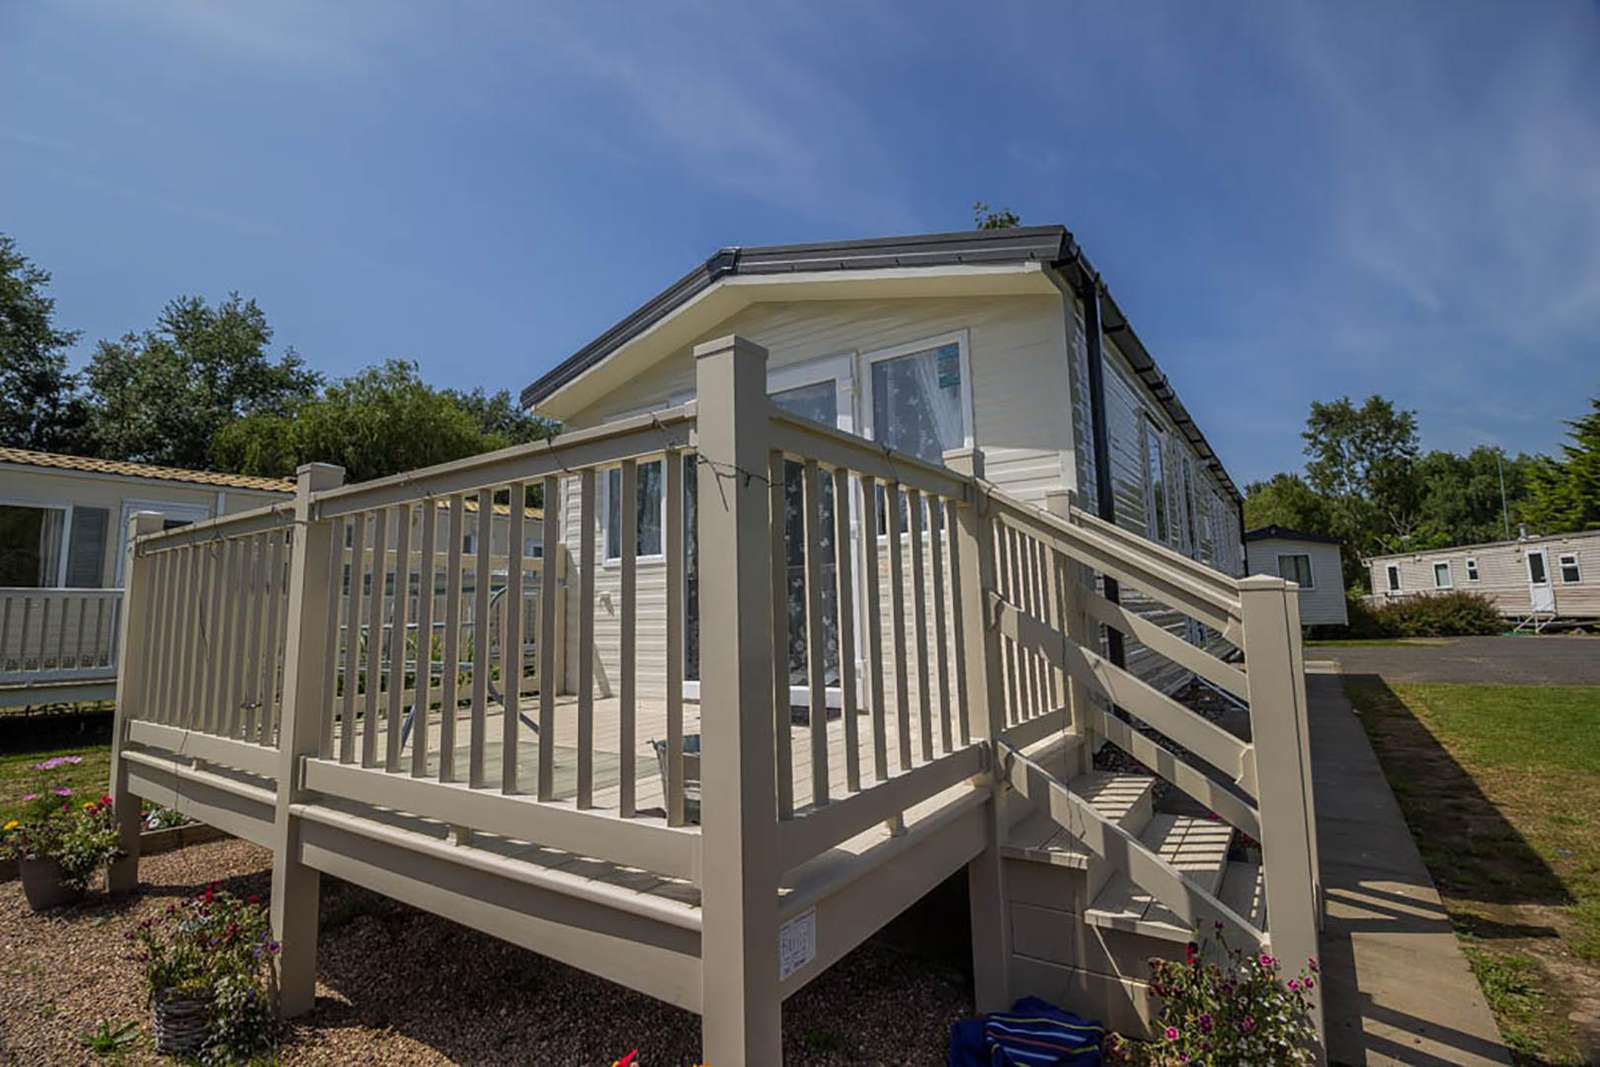 33010S – Sunrise area, 3 bed, 8 berth caravan with decking, D/G & C/H. Diamond rated. - property